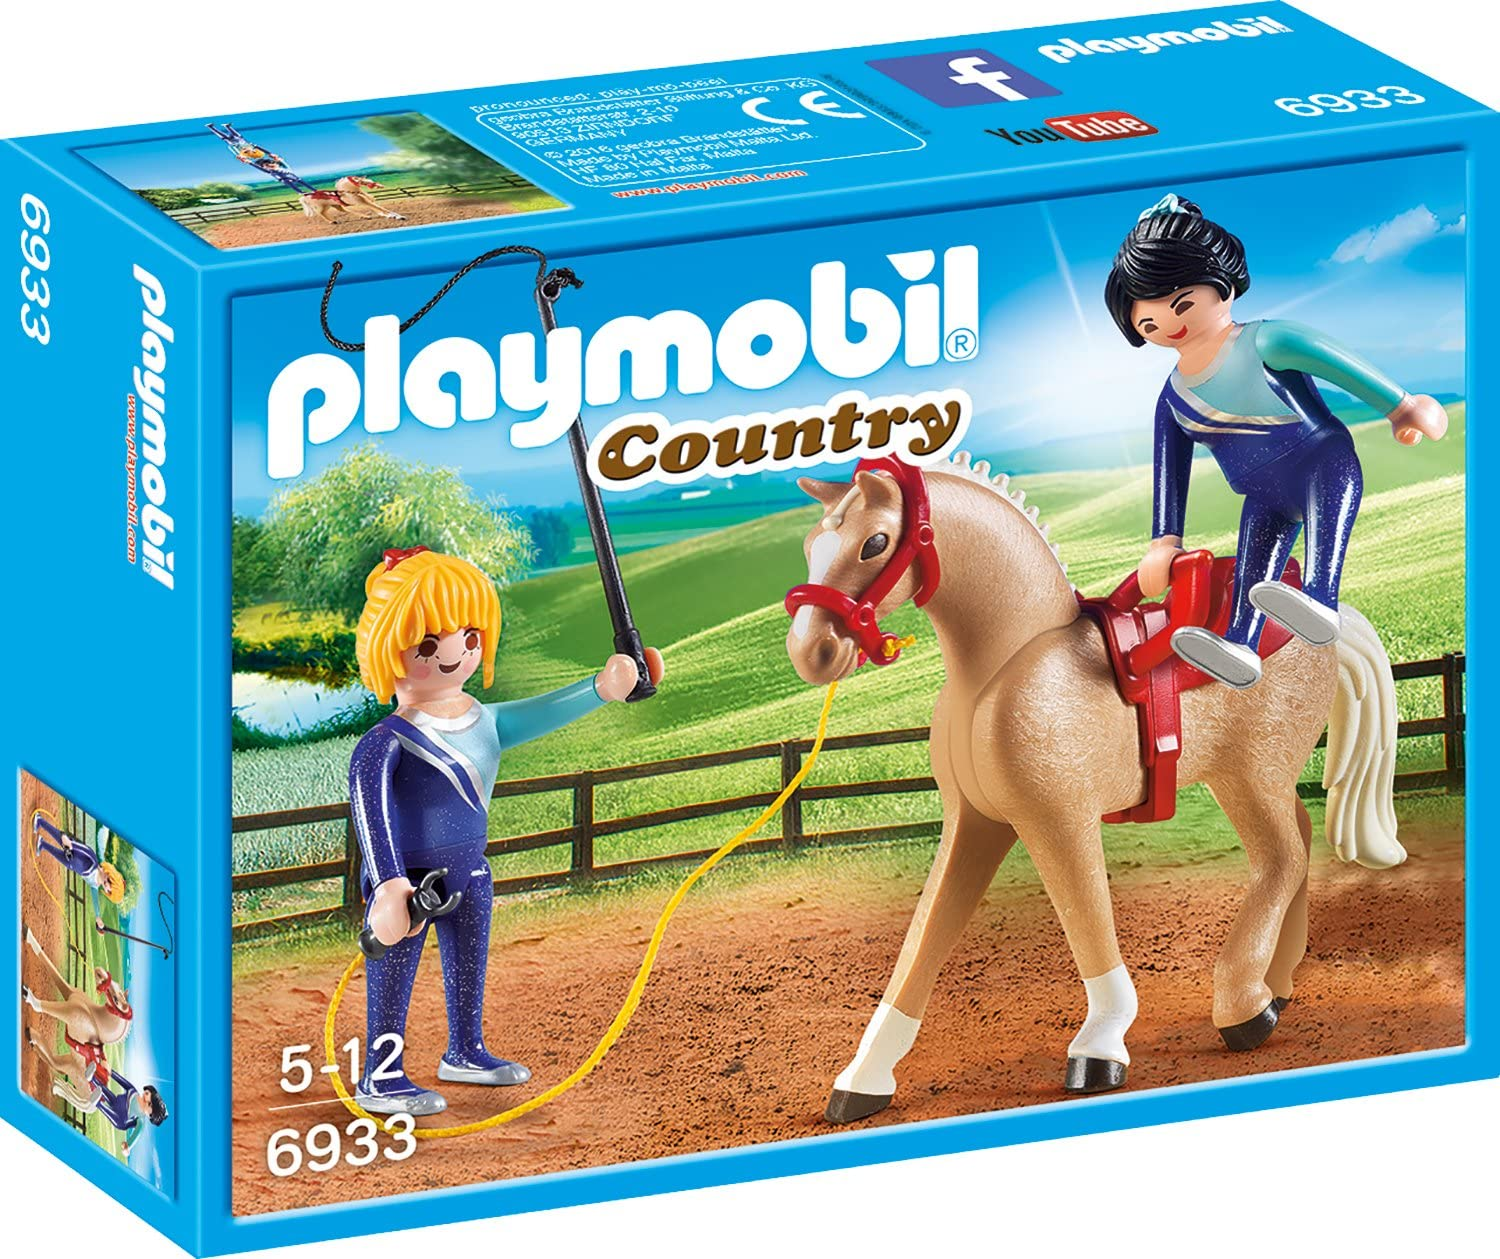 Playmobil Country amazon